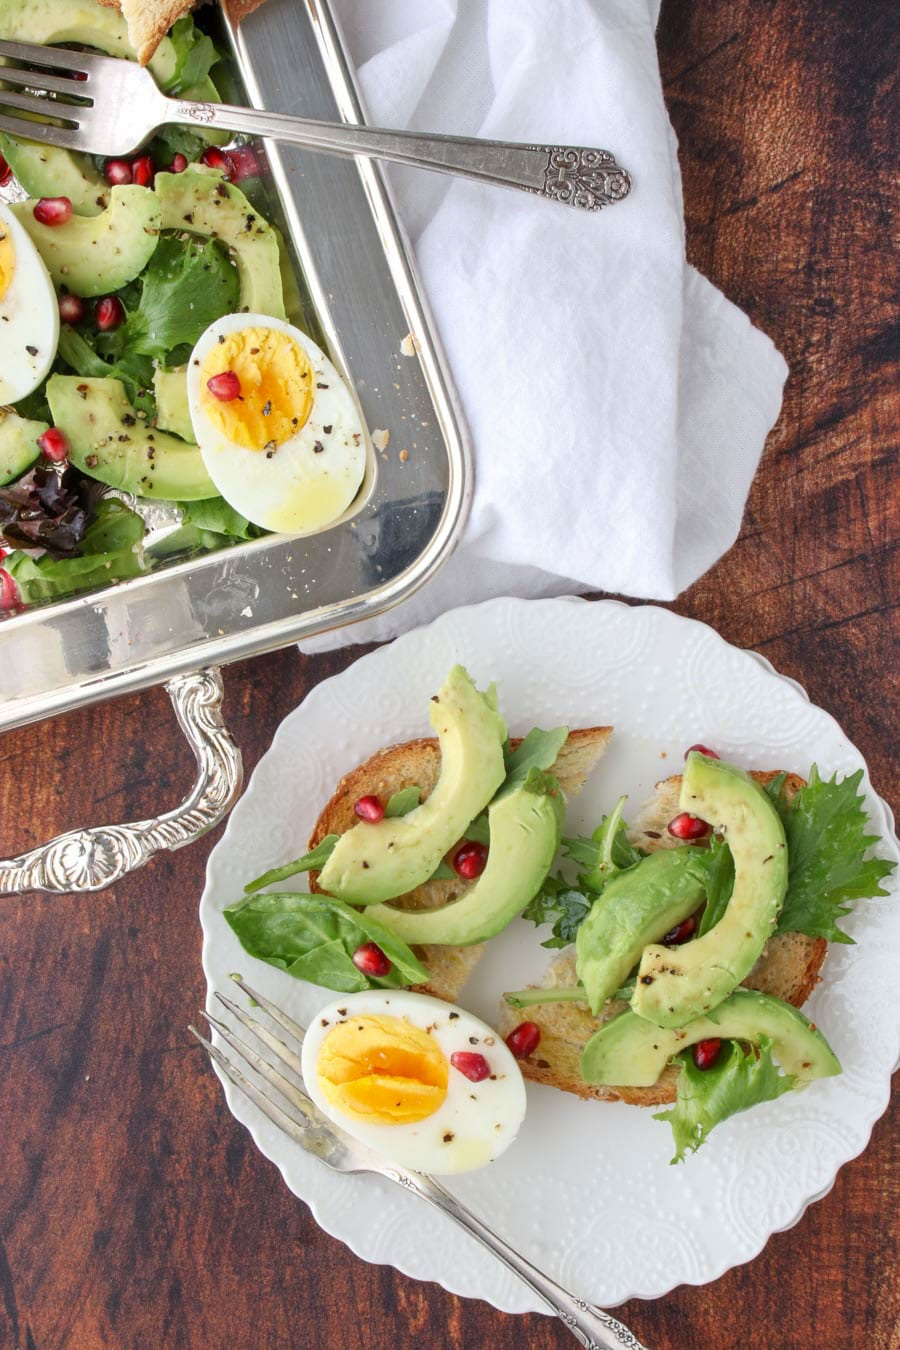 while plate with two slices of toast with sliced avocado on top and hard-boiled egg on the side, garnished with pomegranate seeds